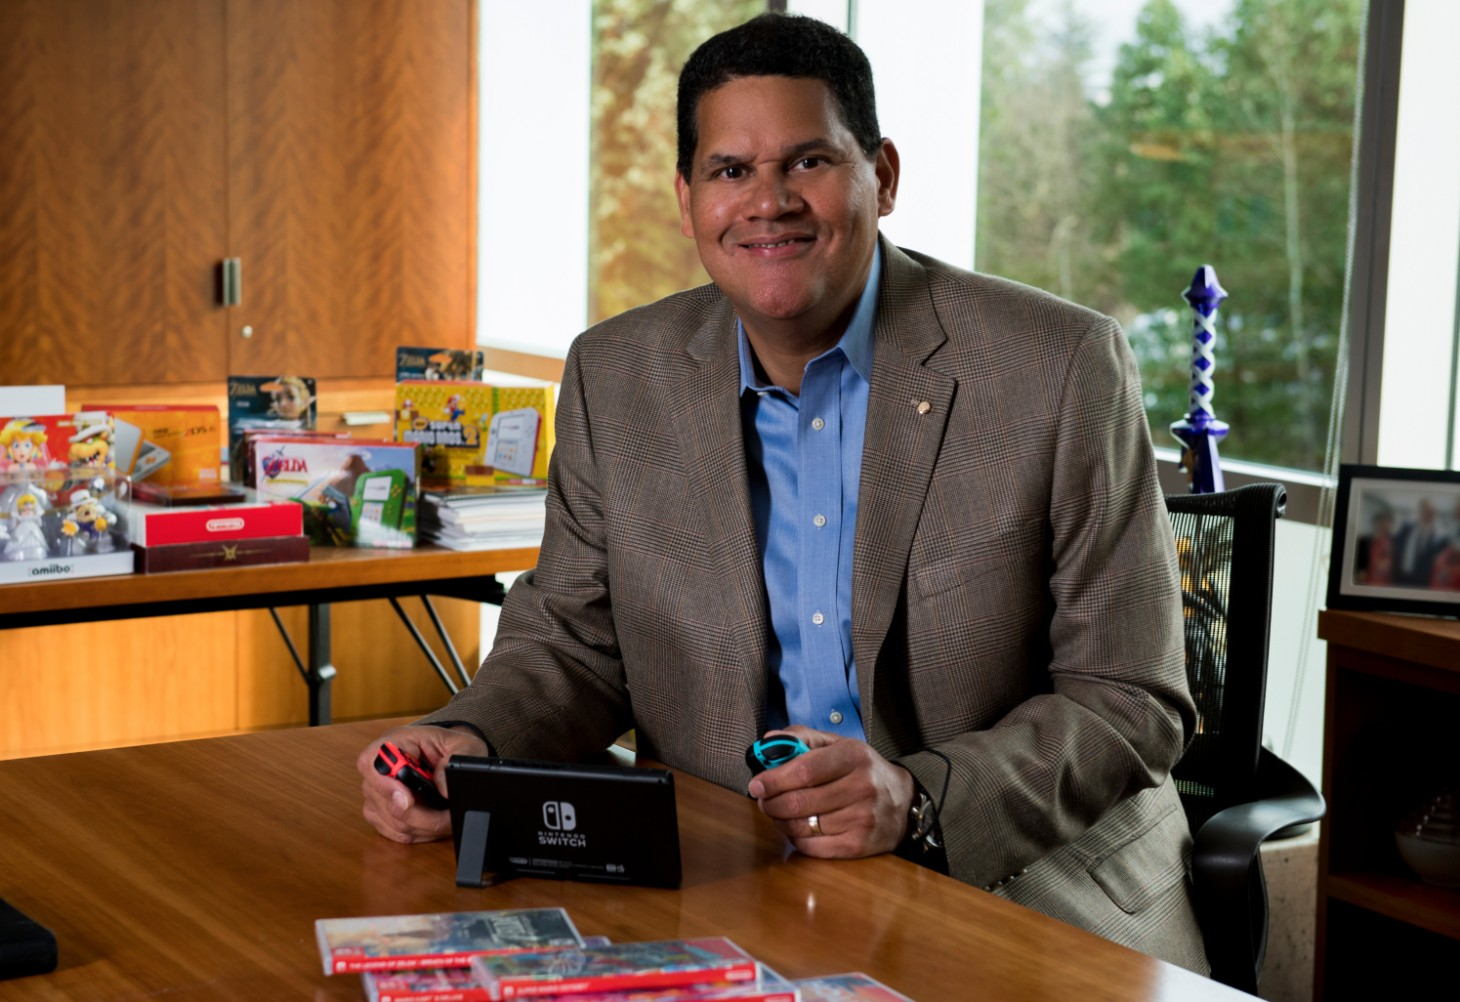 Reggie Fils-Aime retires today, I hope he gets one last pre-recorded Nintendo Direct screenshot